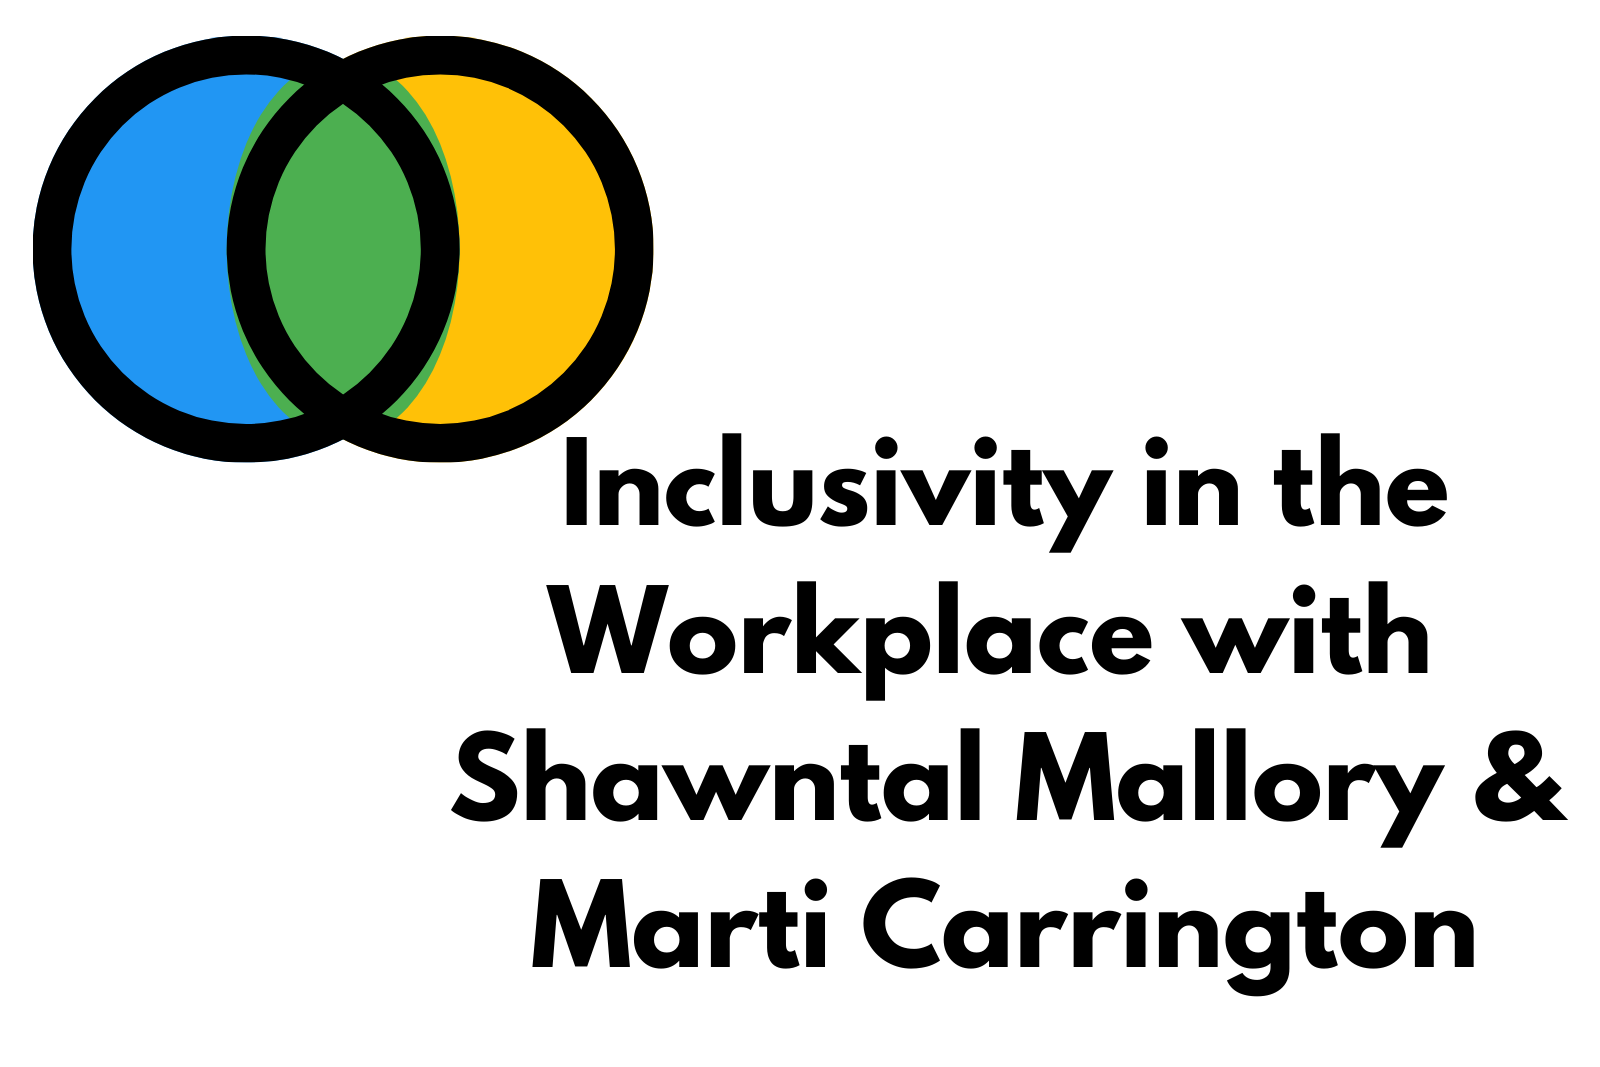 Ep. 26 Inclusivity in the Workplace with Shawntal Mallory and Marti Carrington